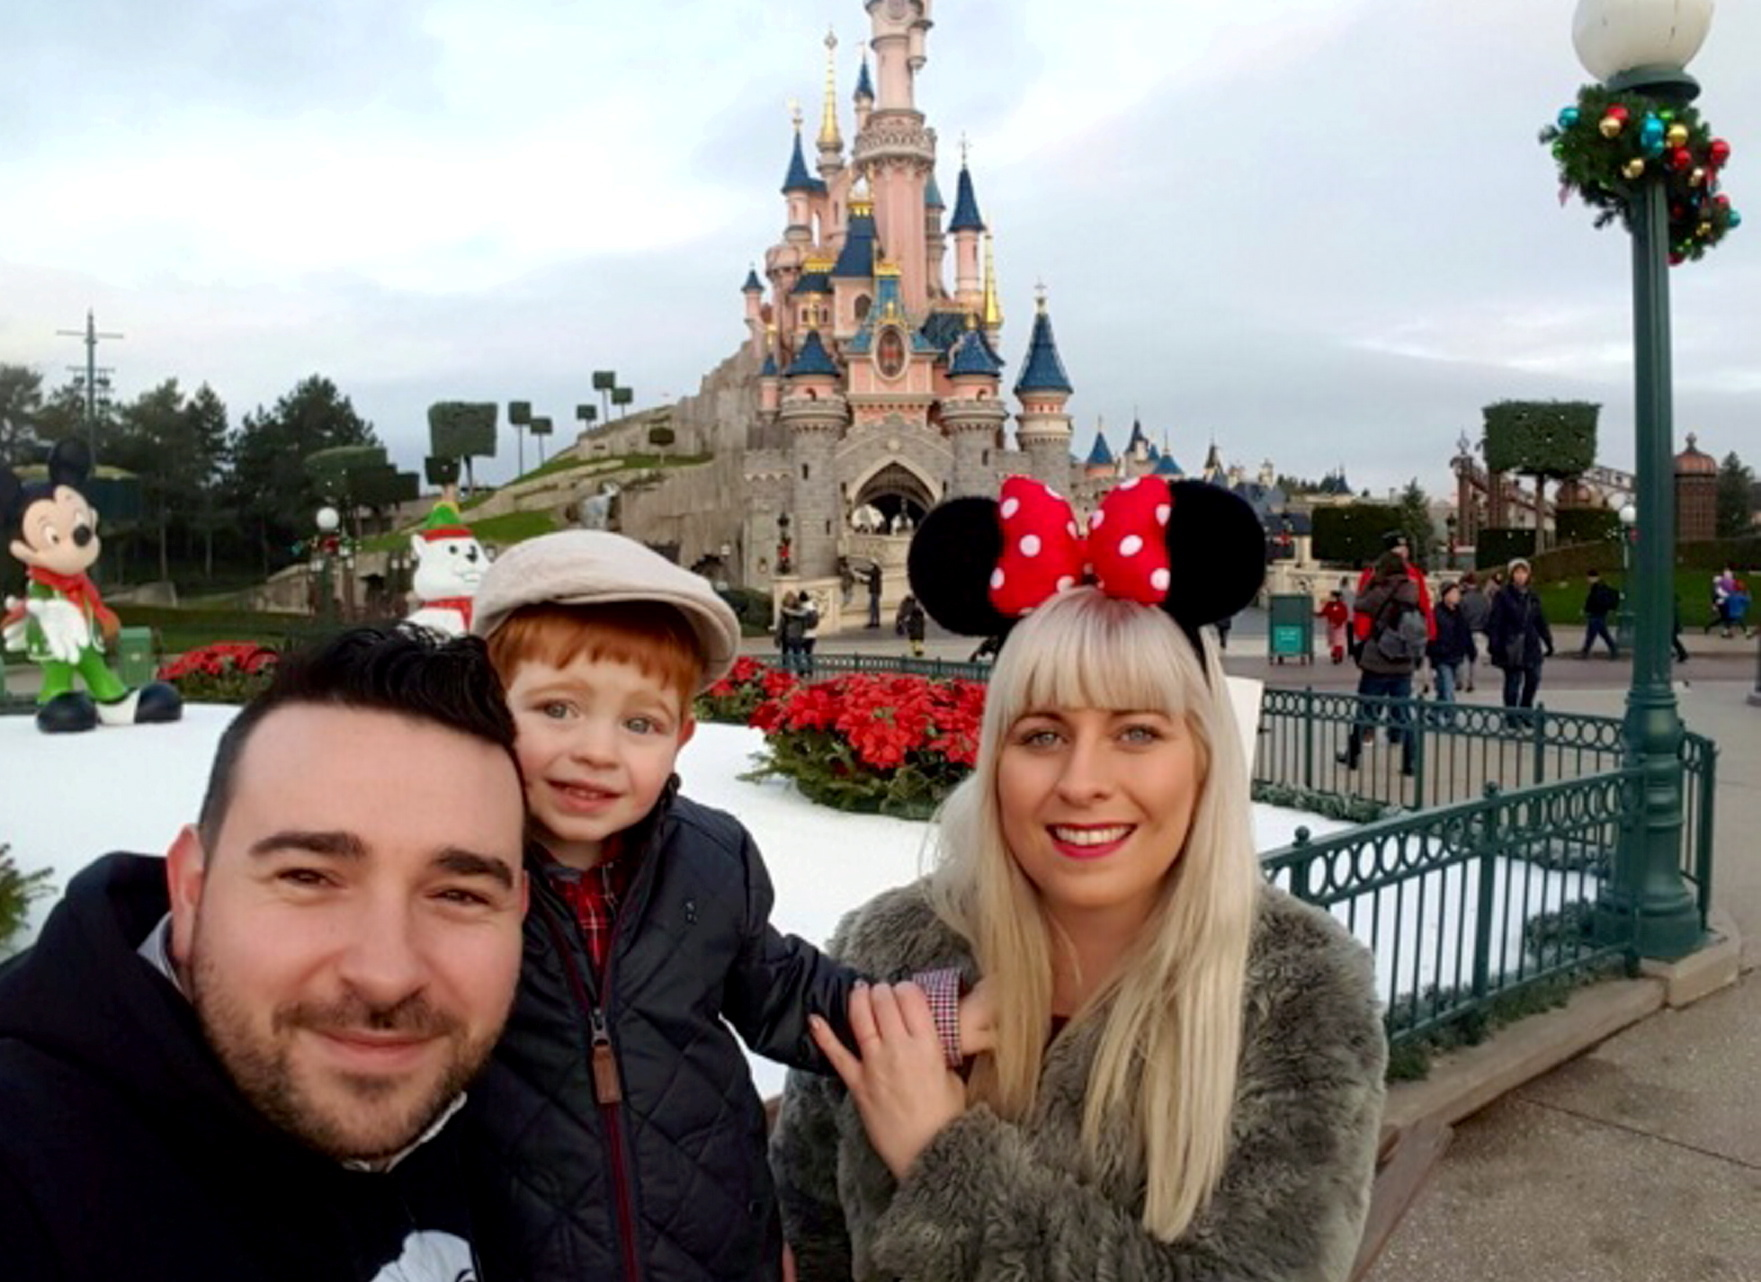 Paula with husband William and their son, also  William, at Disneyland Paris.